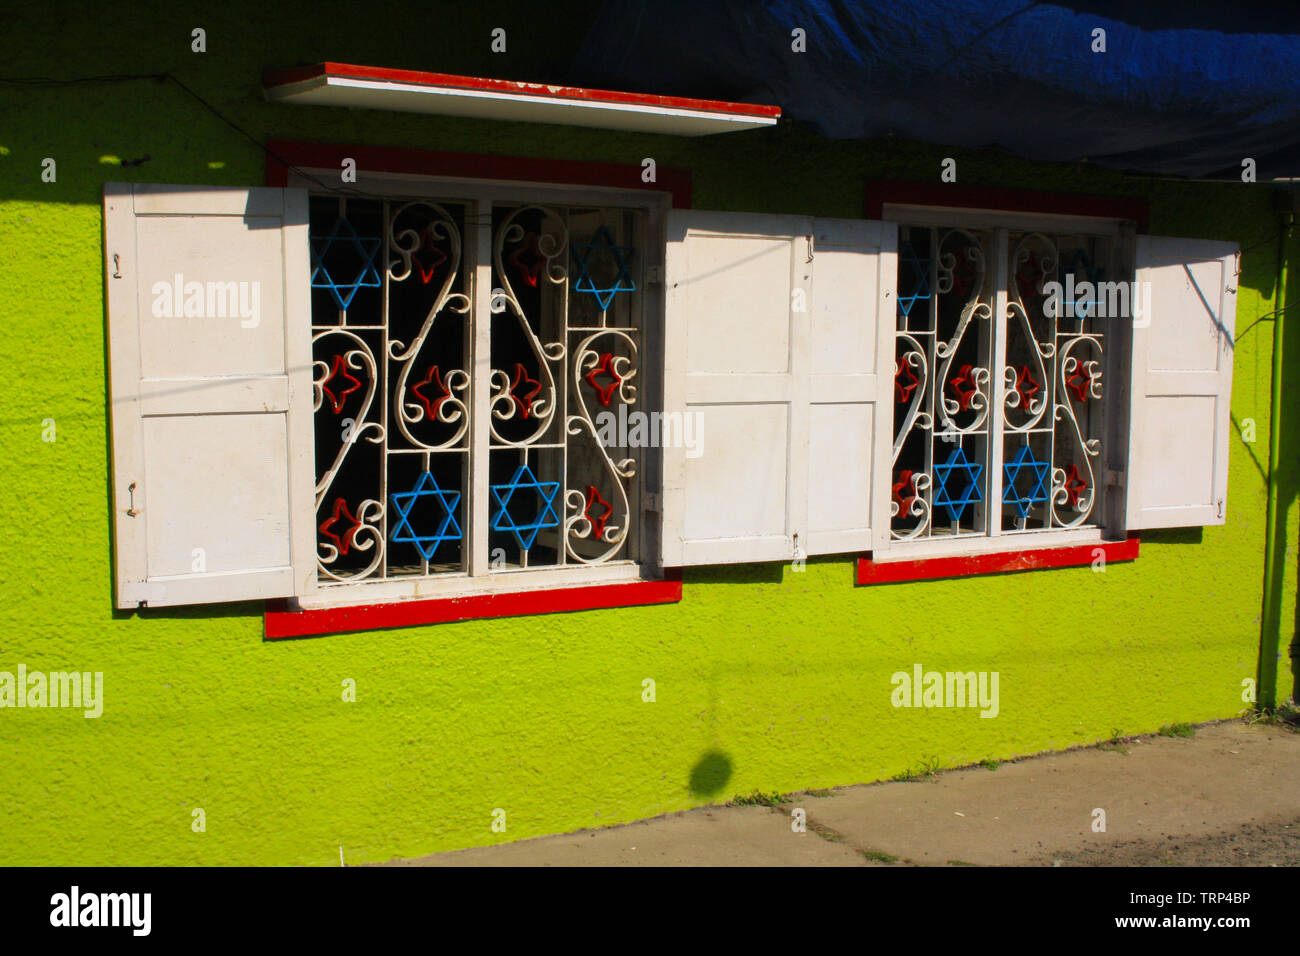 Jewish Star wrought iron window designs in Jewtown the oldest Jewish community in Cochin (Kochi) Kerala India - Stock Image